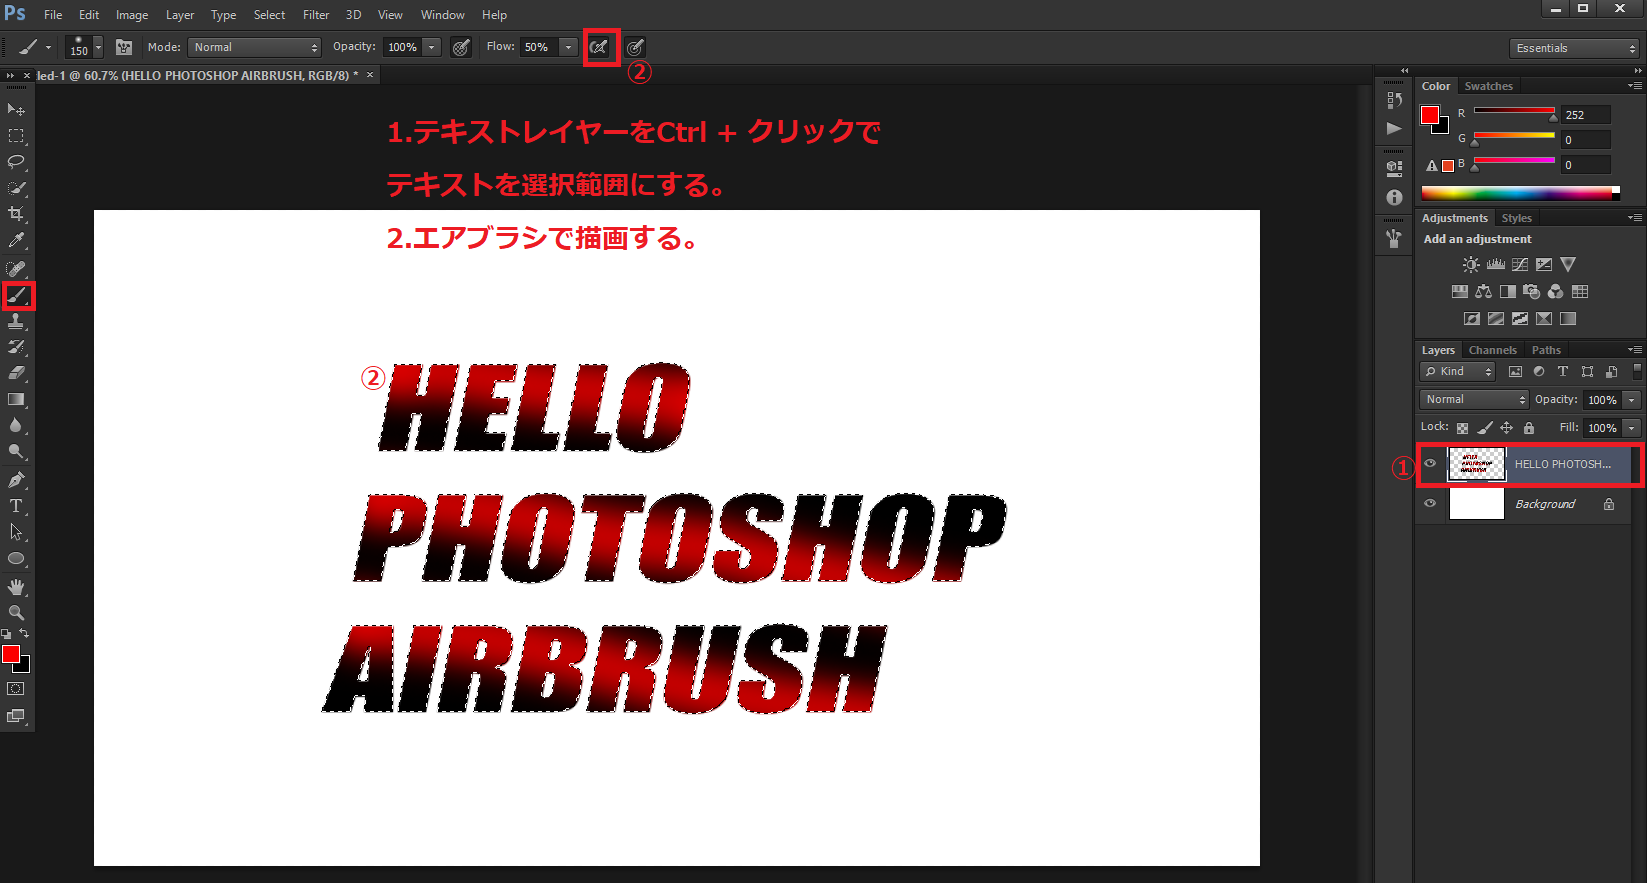 photoshop airbrush(2)